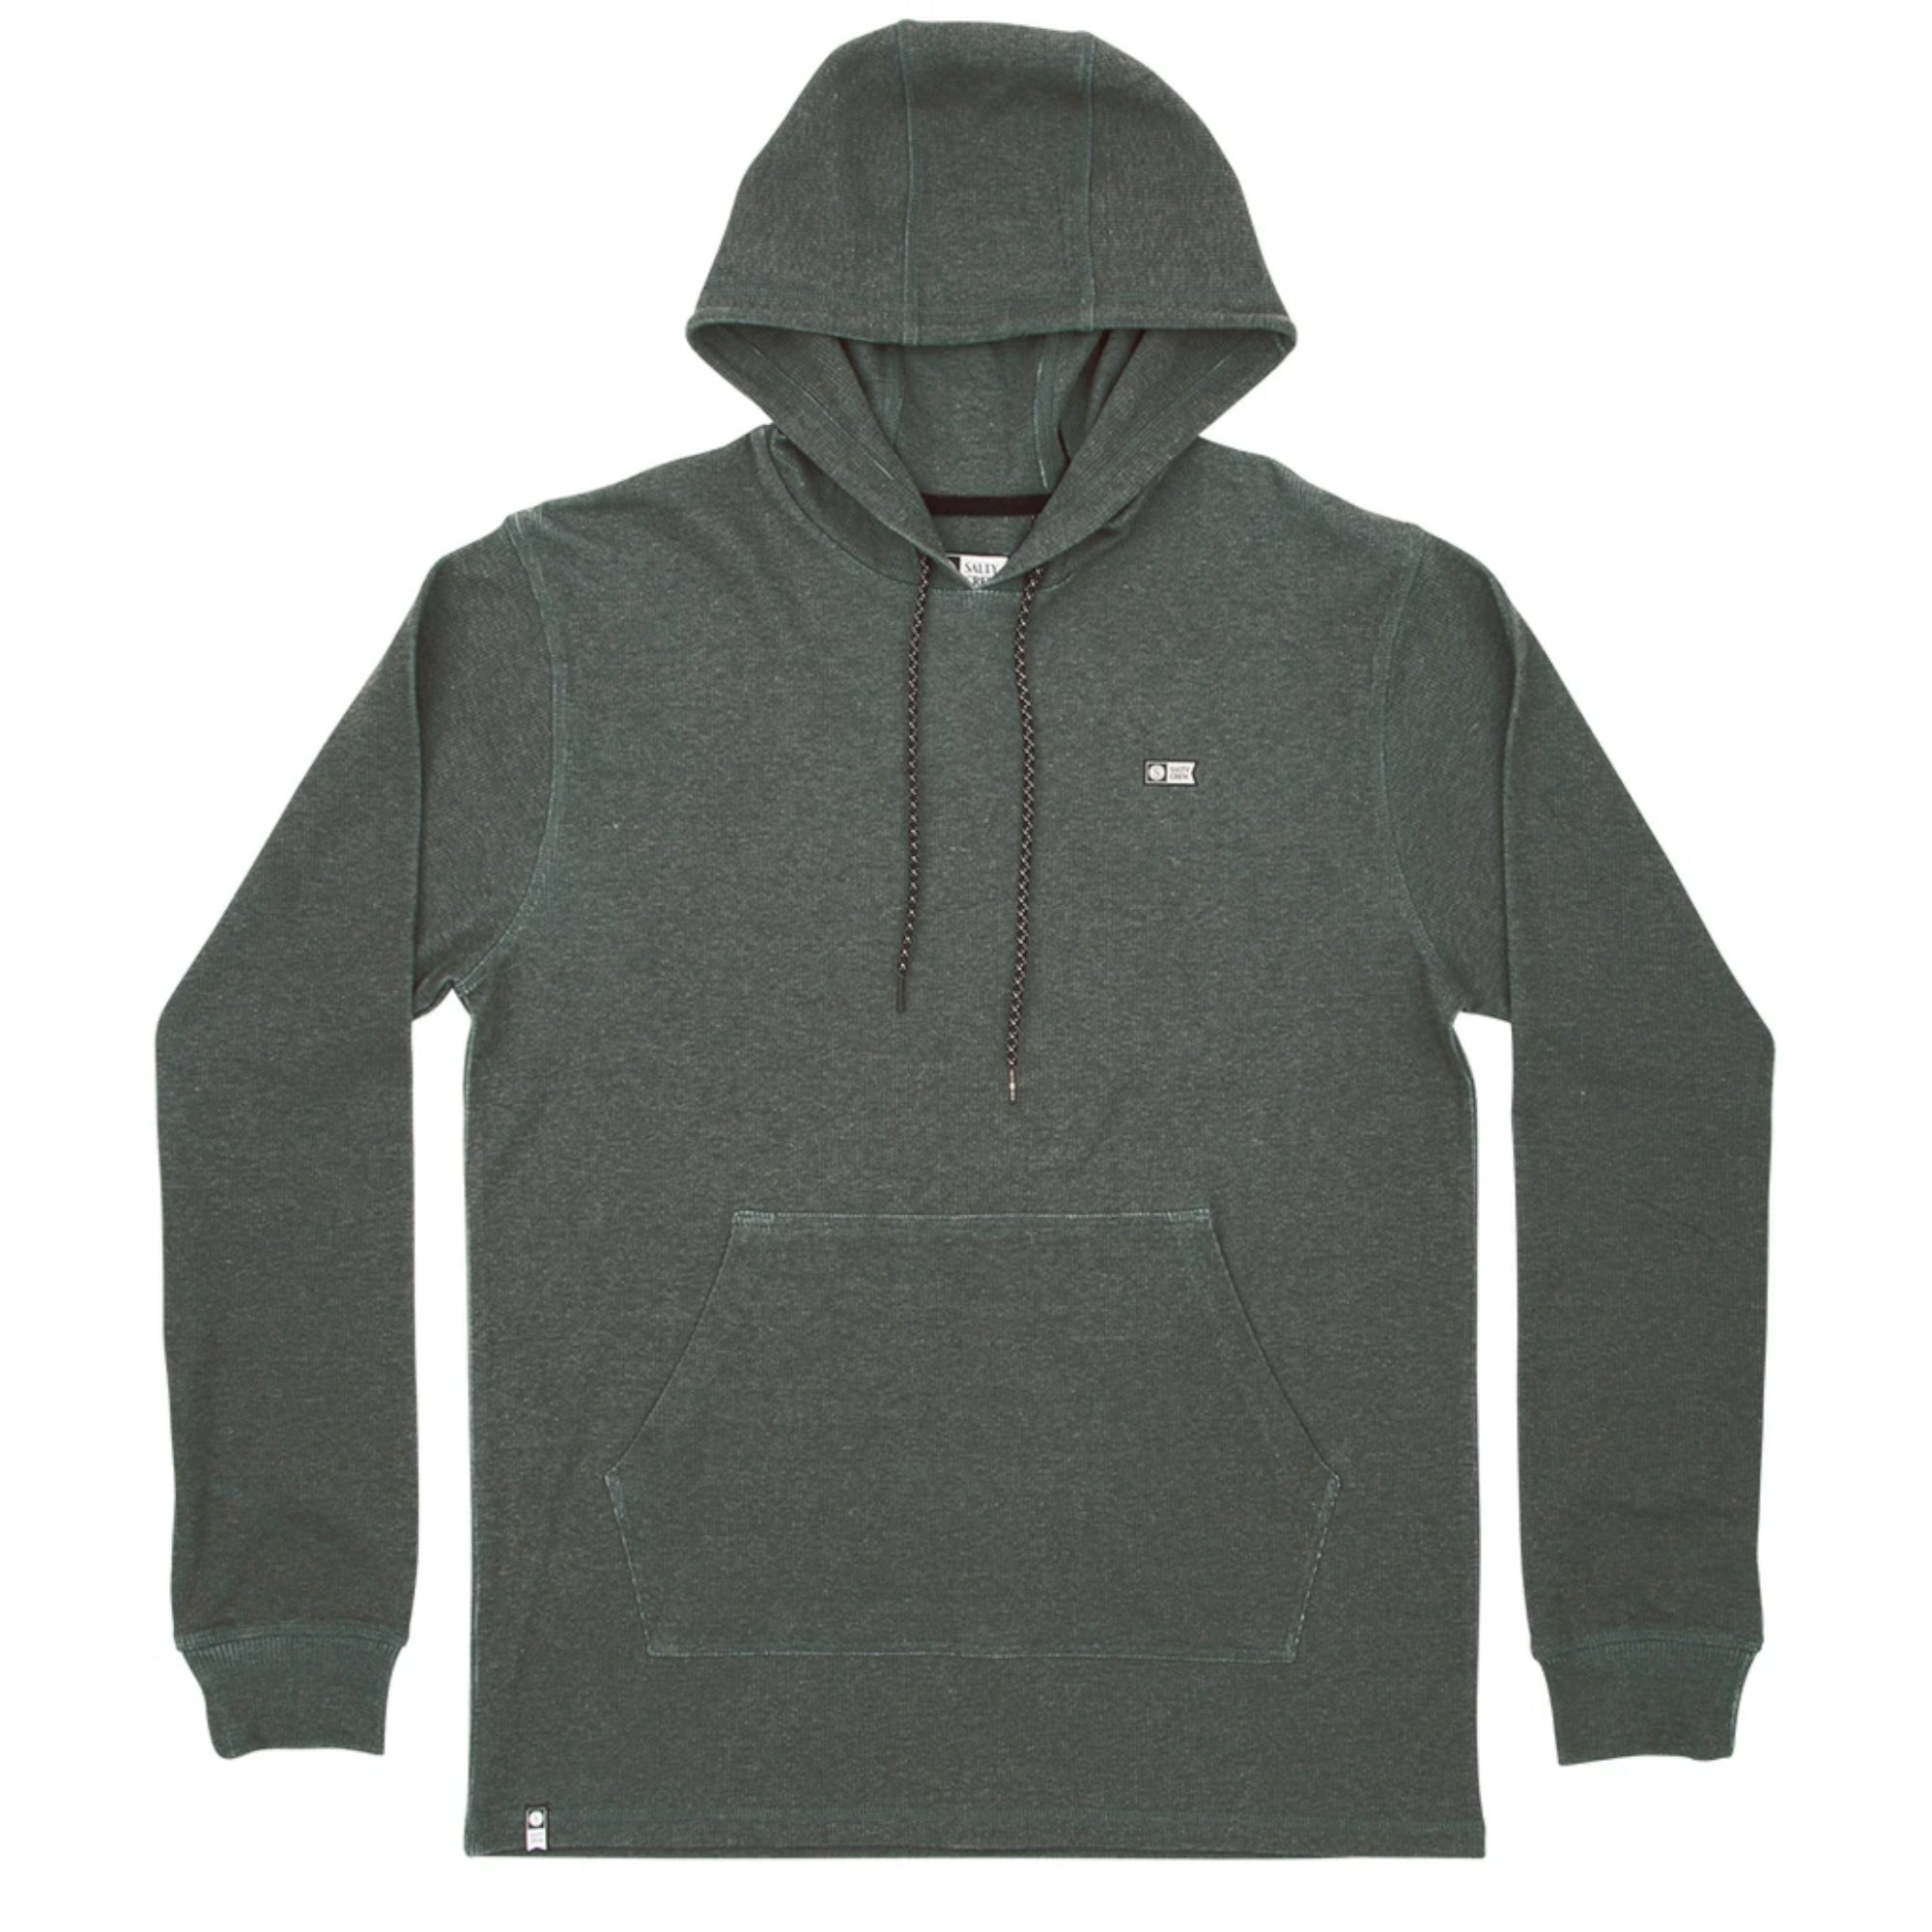 Salty Crew Dockman Thermal Pullover Men's Hoody